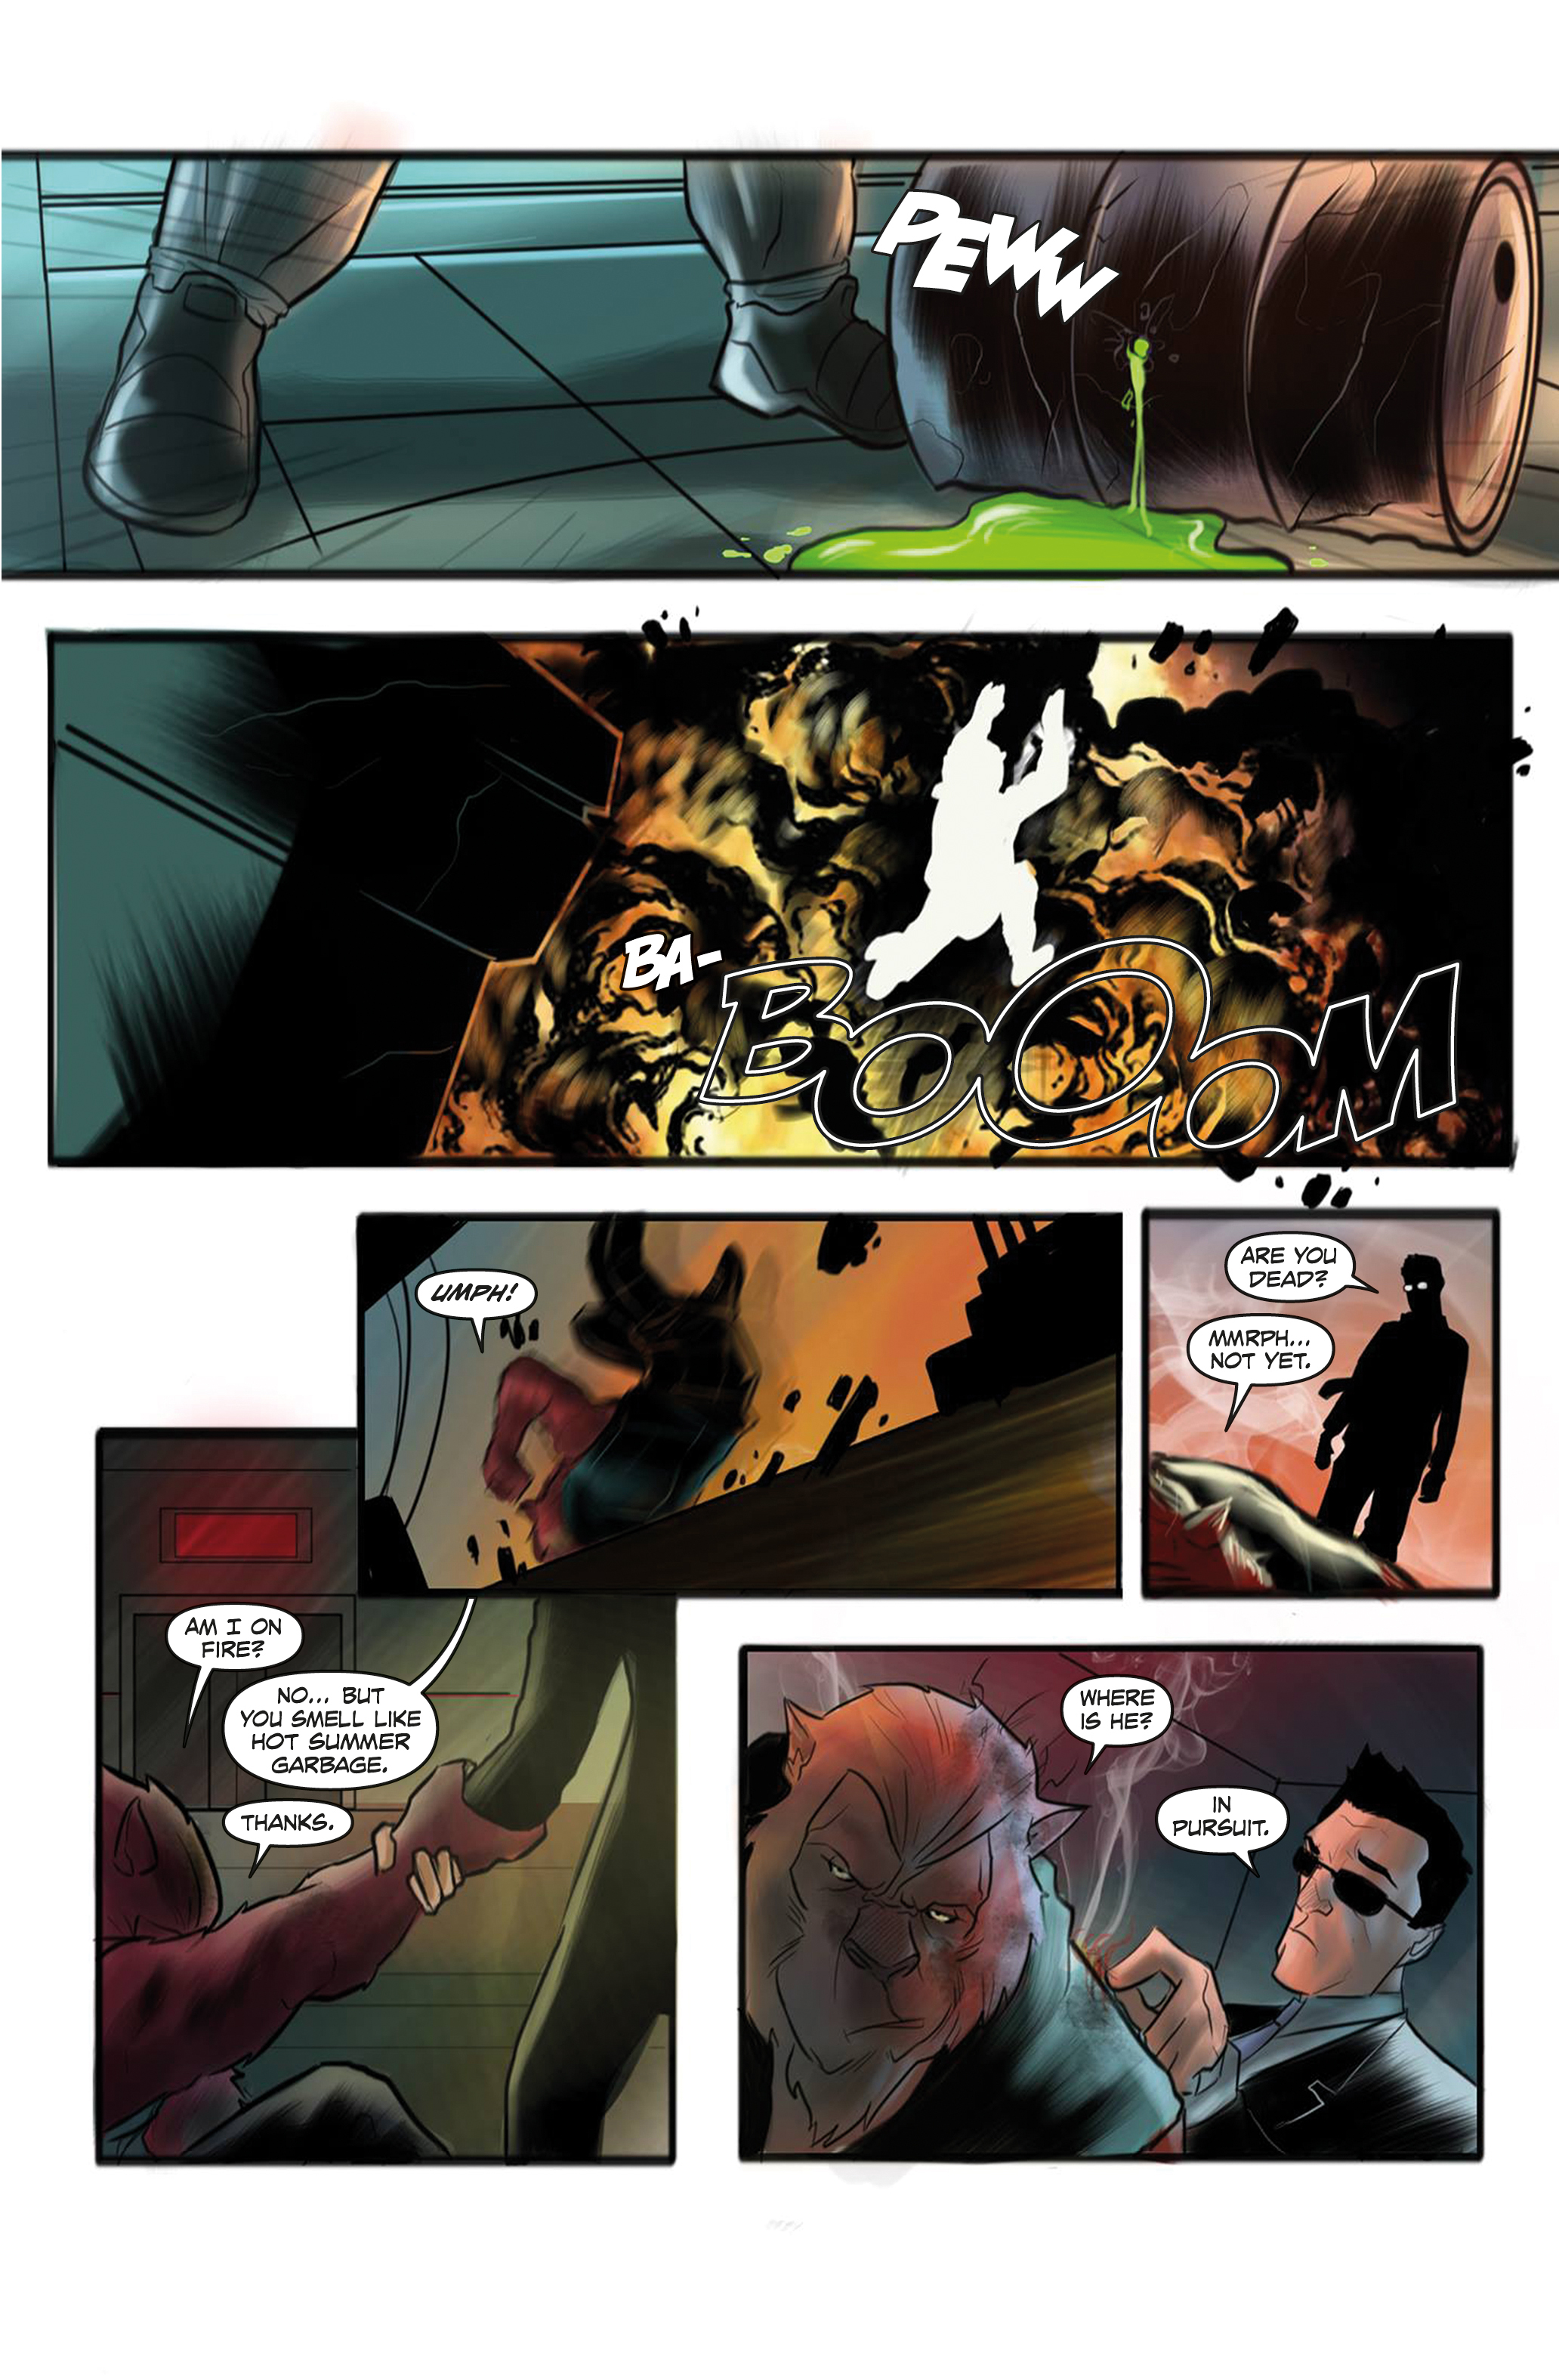 Shelter Division #1 Page 5-01.jpg